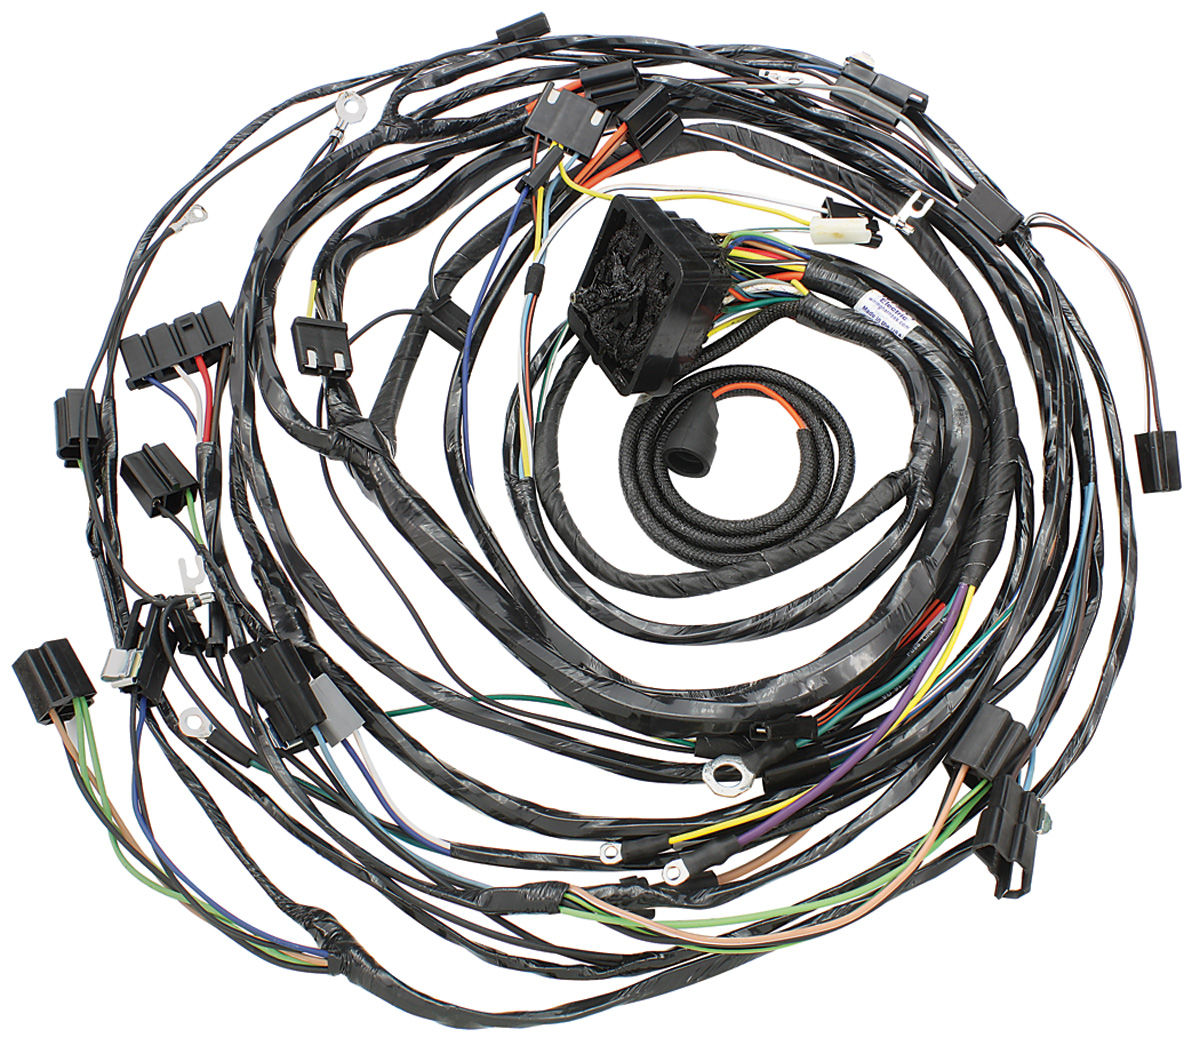 1968 Cadillac Engine Harness With Air Conditioning (Except